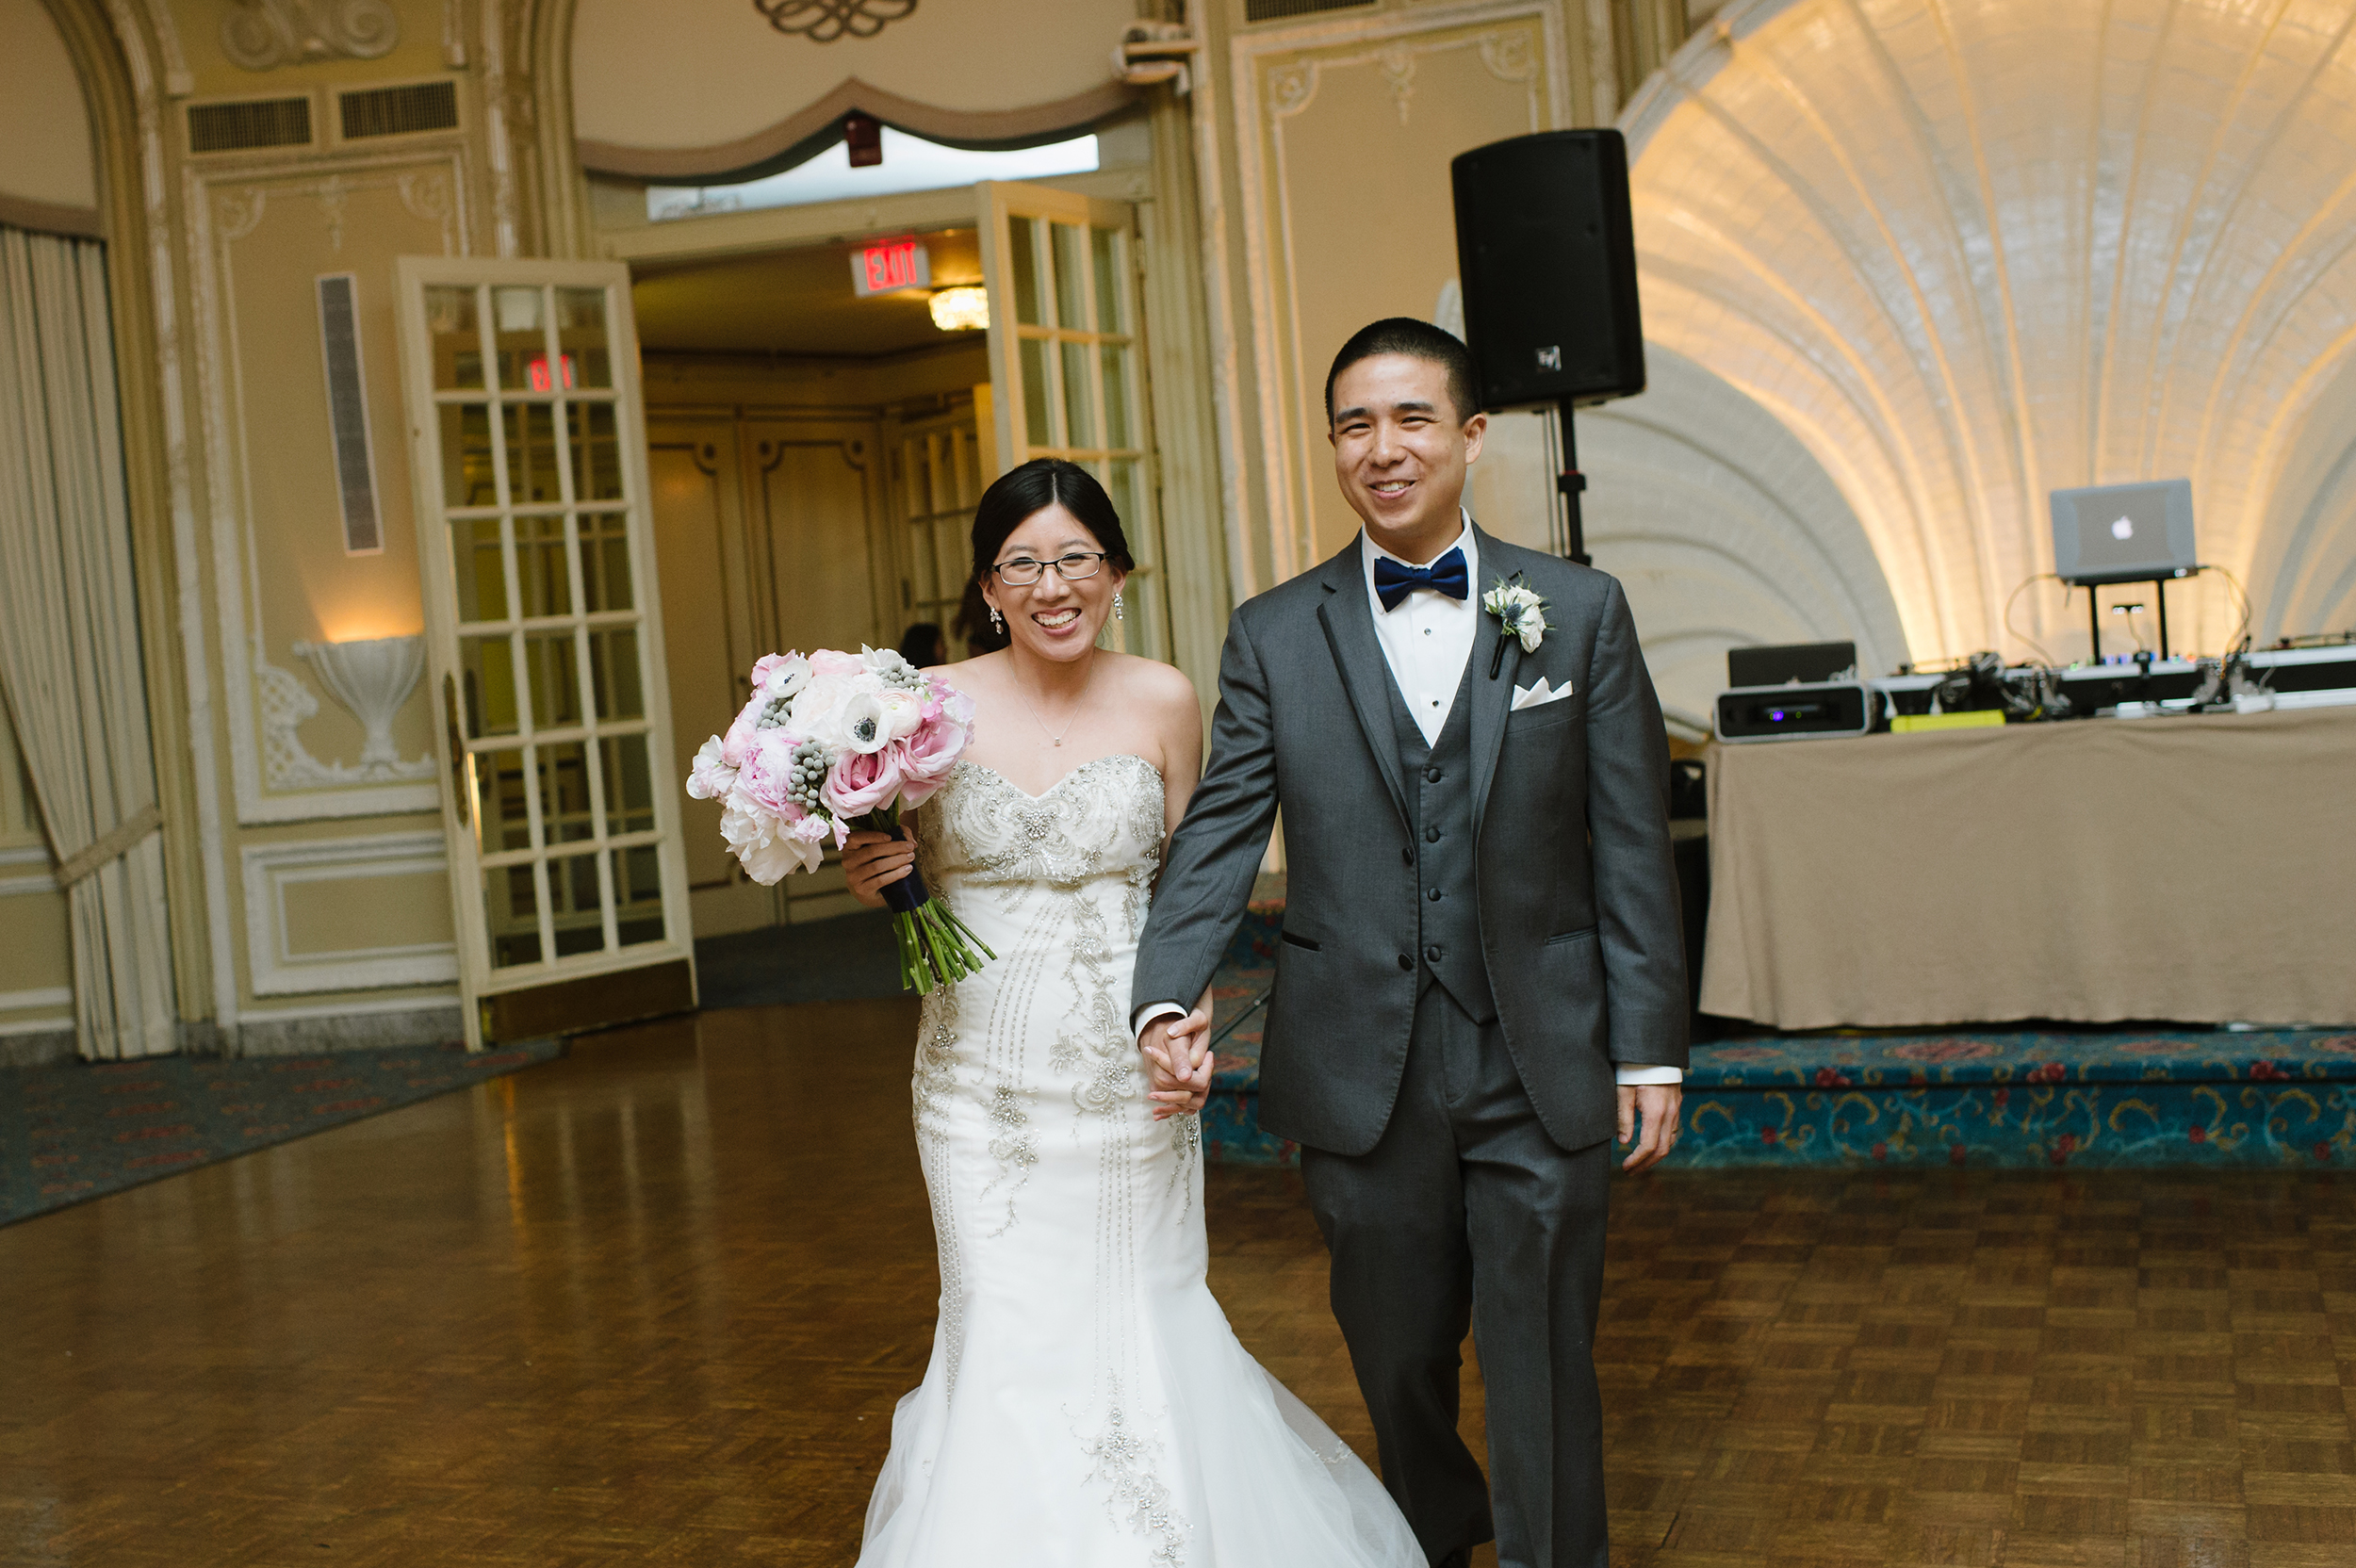 Fairmont-Copley-Wedding041.jpg